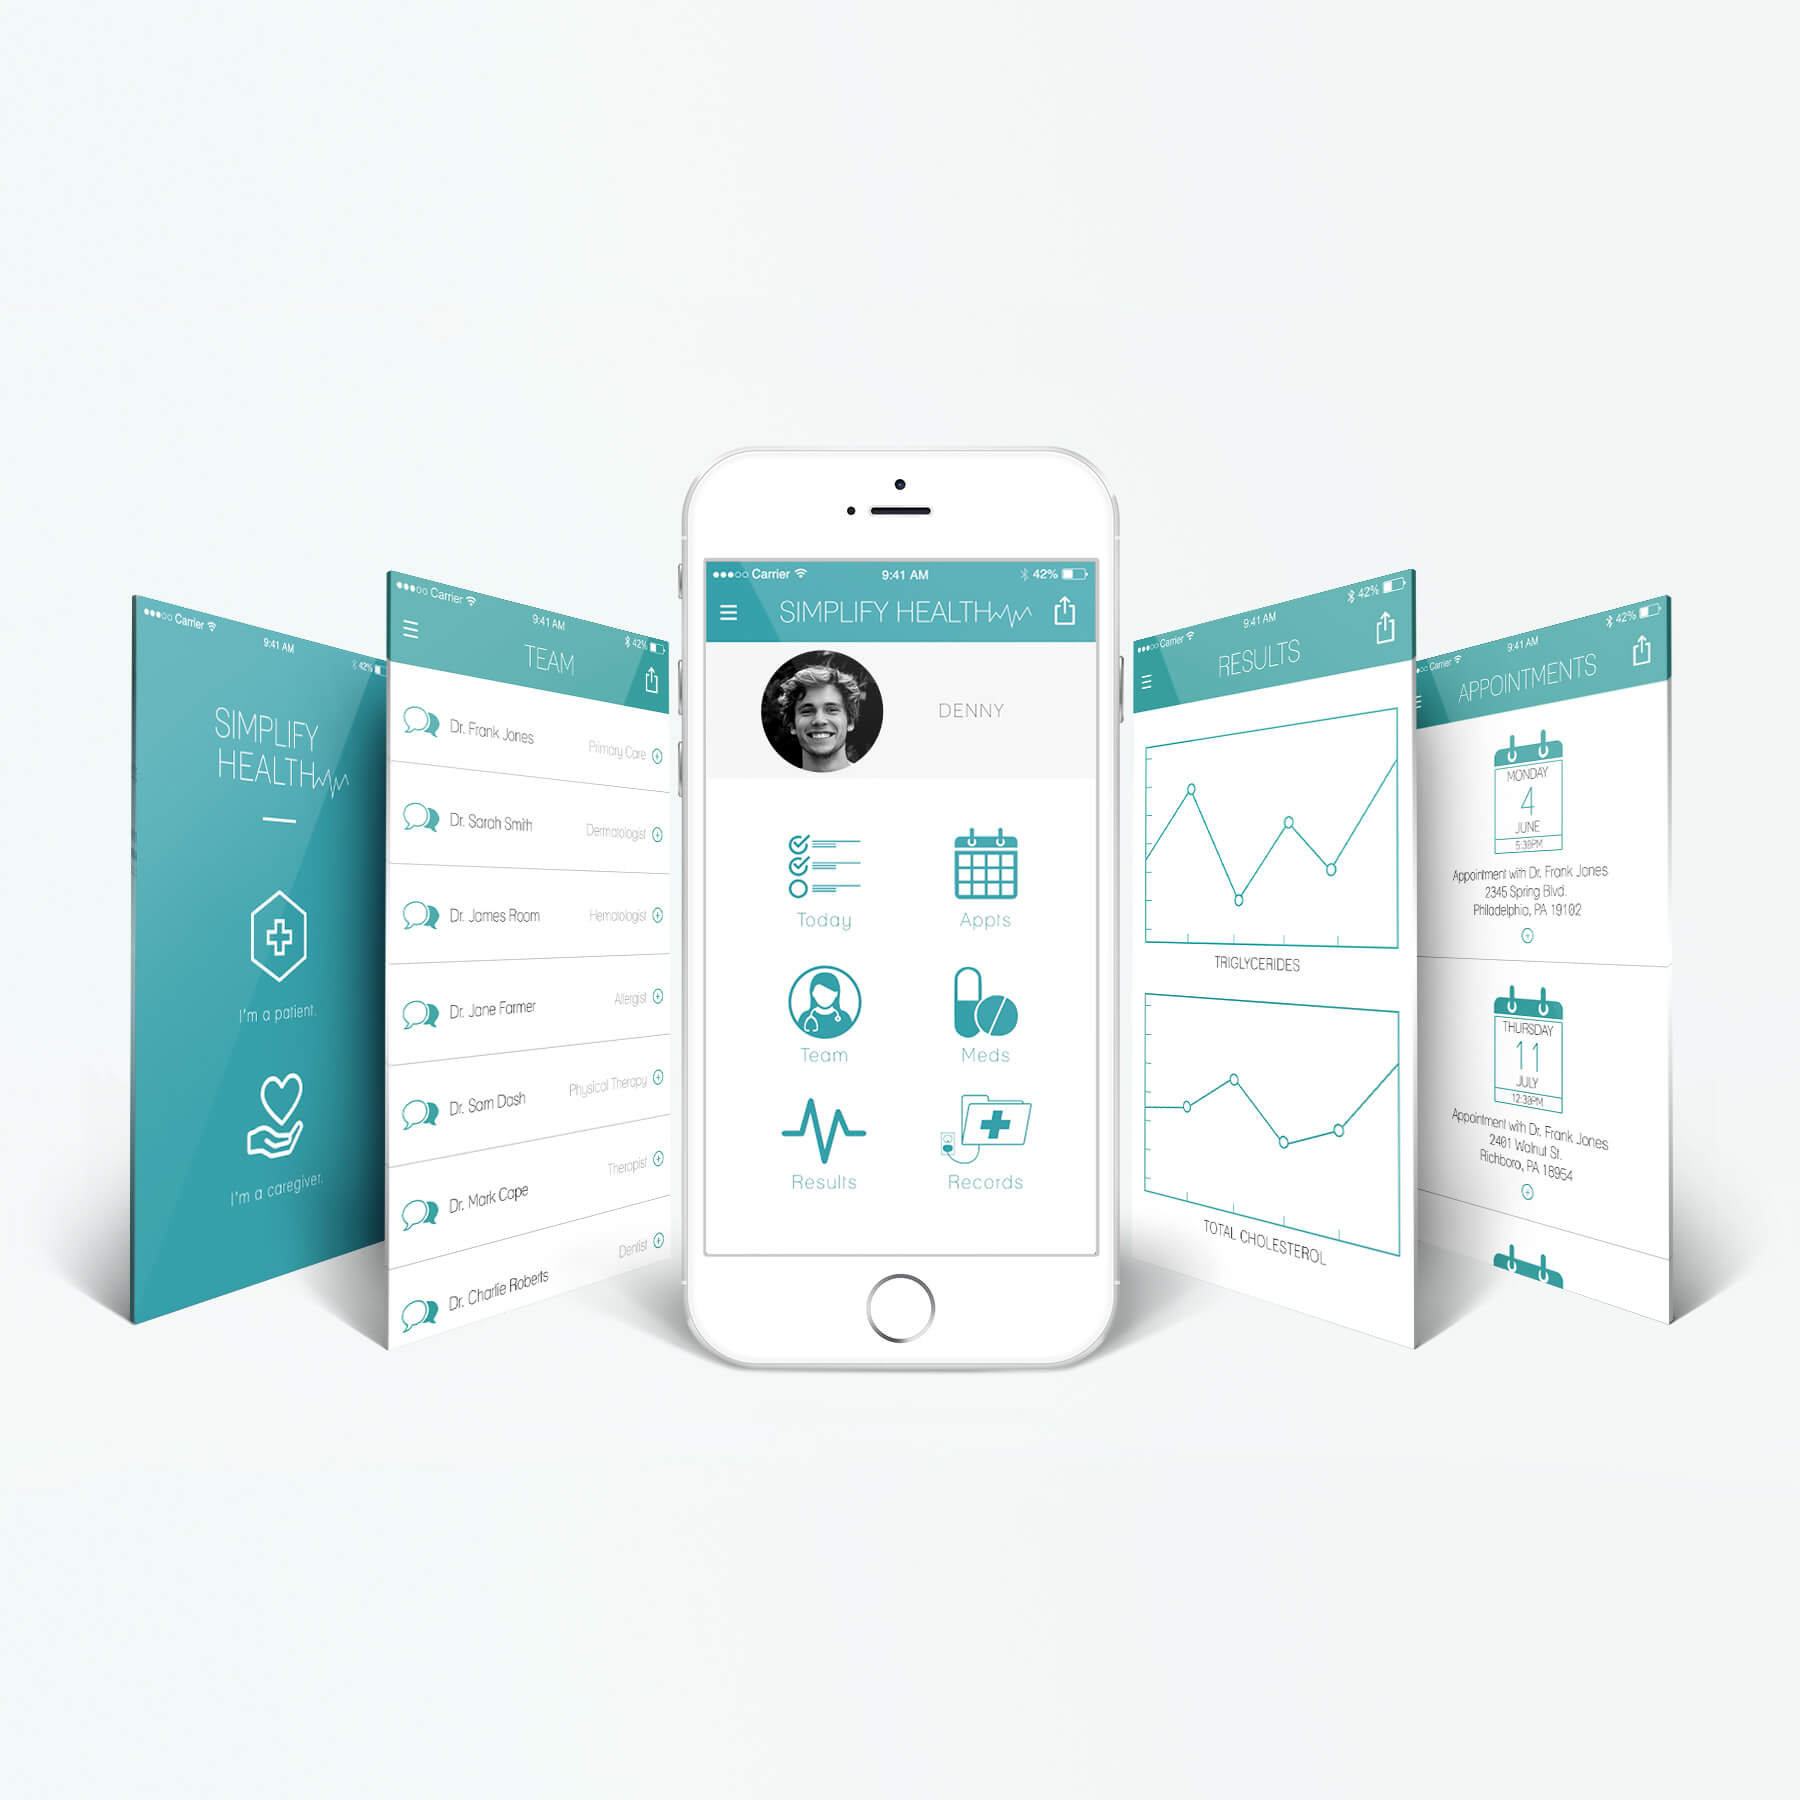 Image shows 5 screenshots of a healthcare app that are designed to be simple ways for patients to keep track of and access their medical information and records.